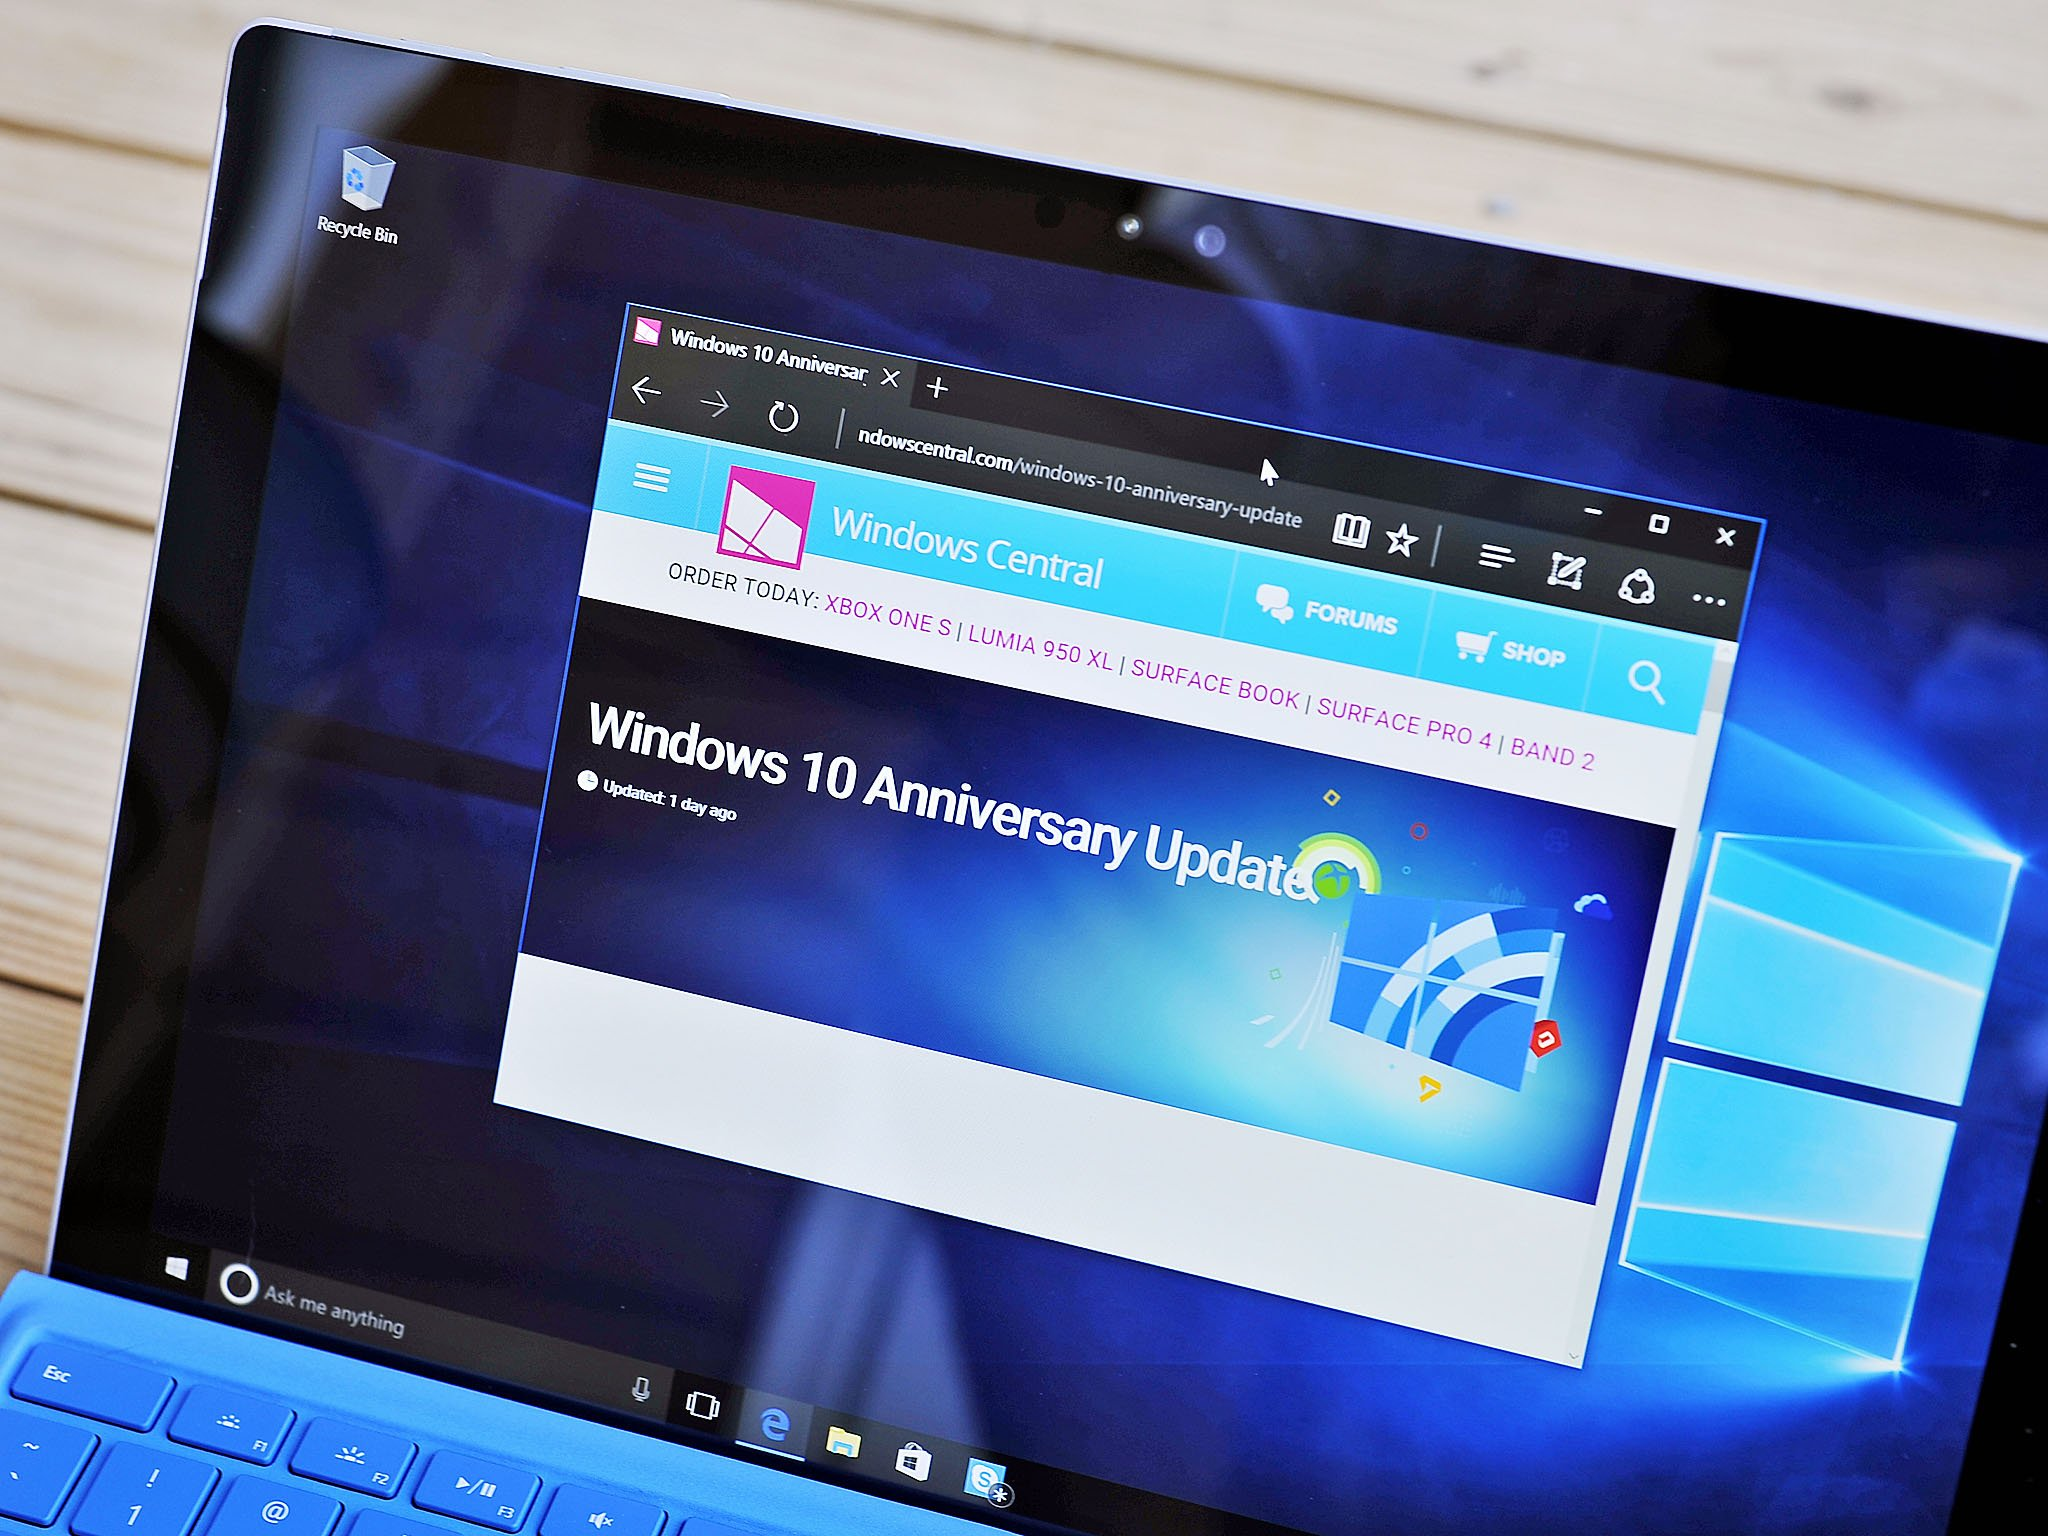 The Definitive Windows 10 Anniversary Update Review